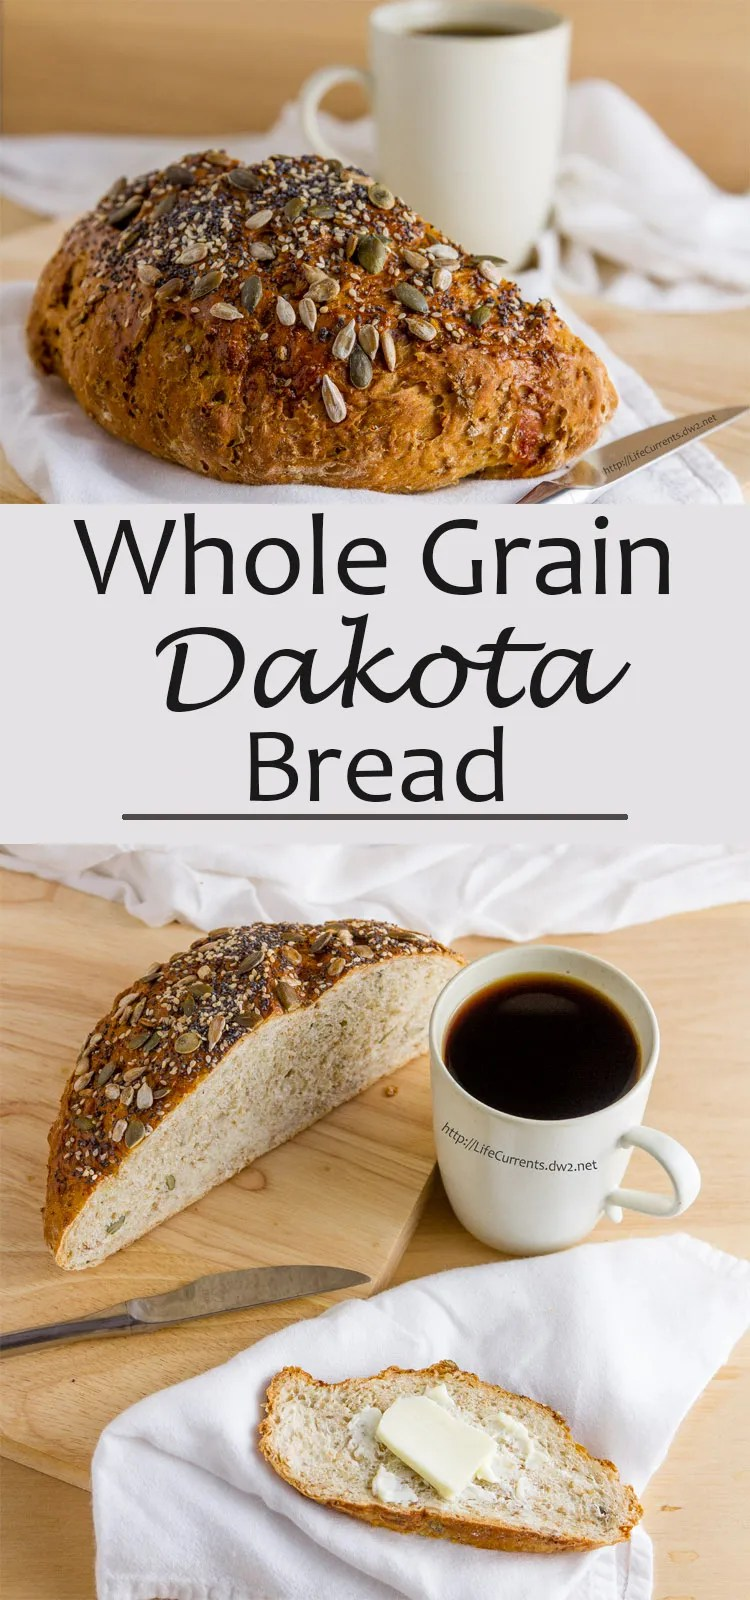 Cook's Country Dakota Bread long pin for Pinterest with two images half th eloaf on top and a cup open with a slice on bottom